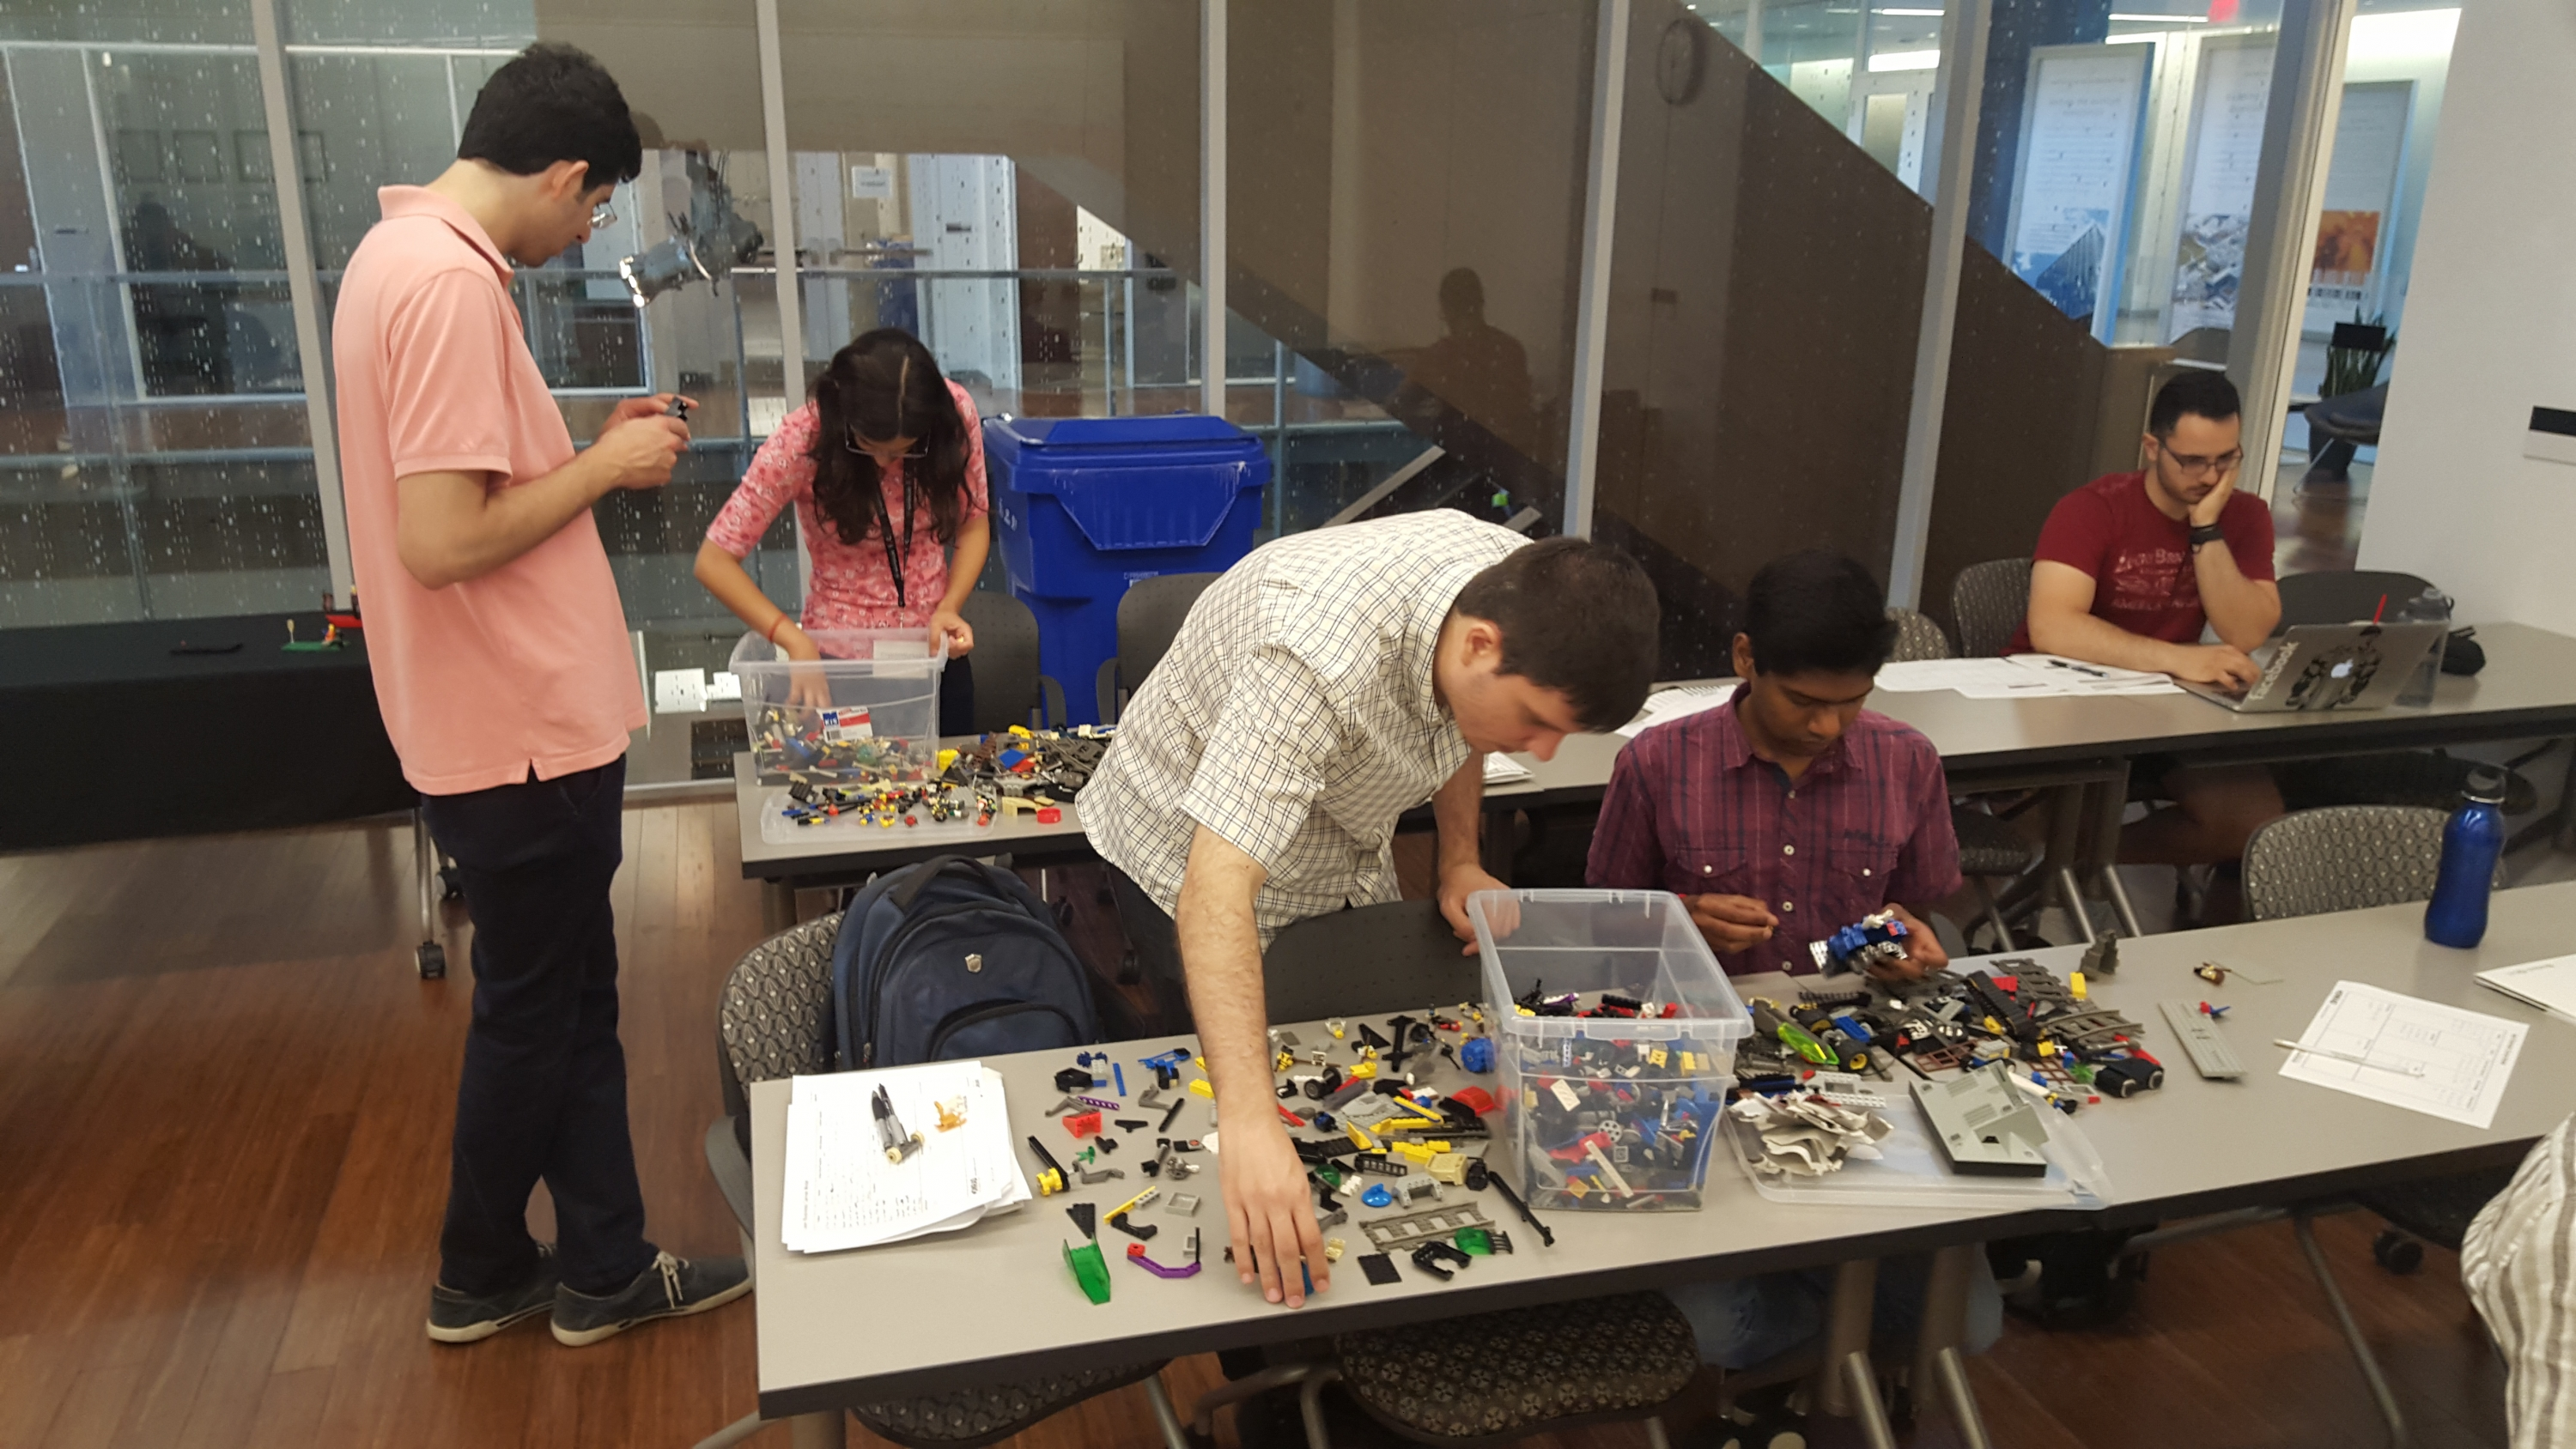 Students participate in a commercialization simulation with Lego